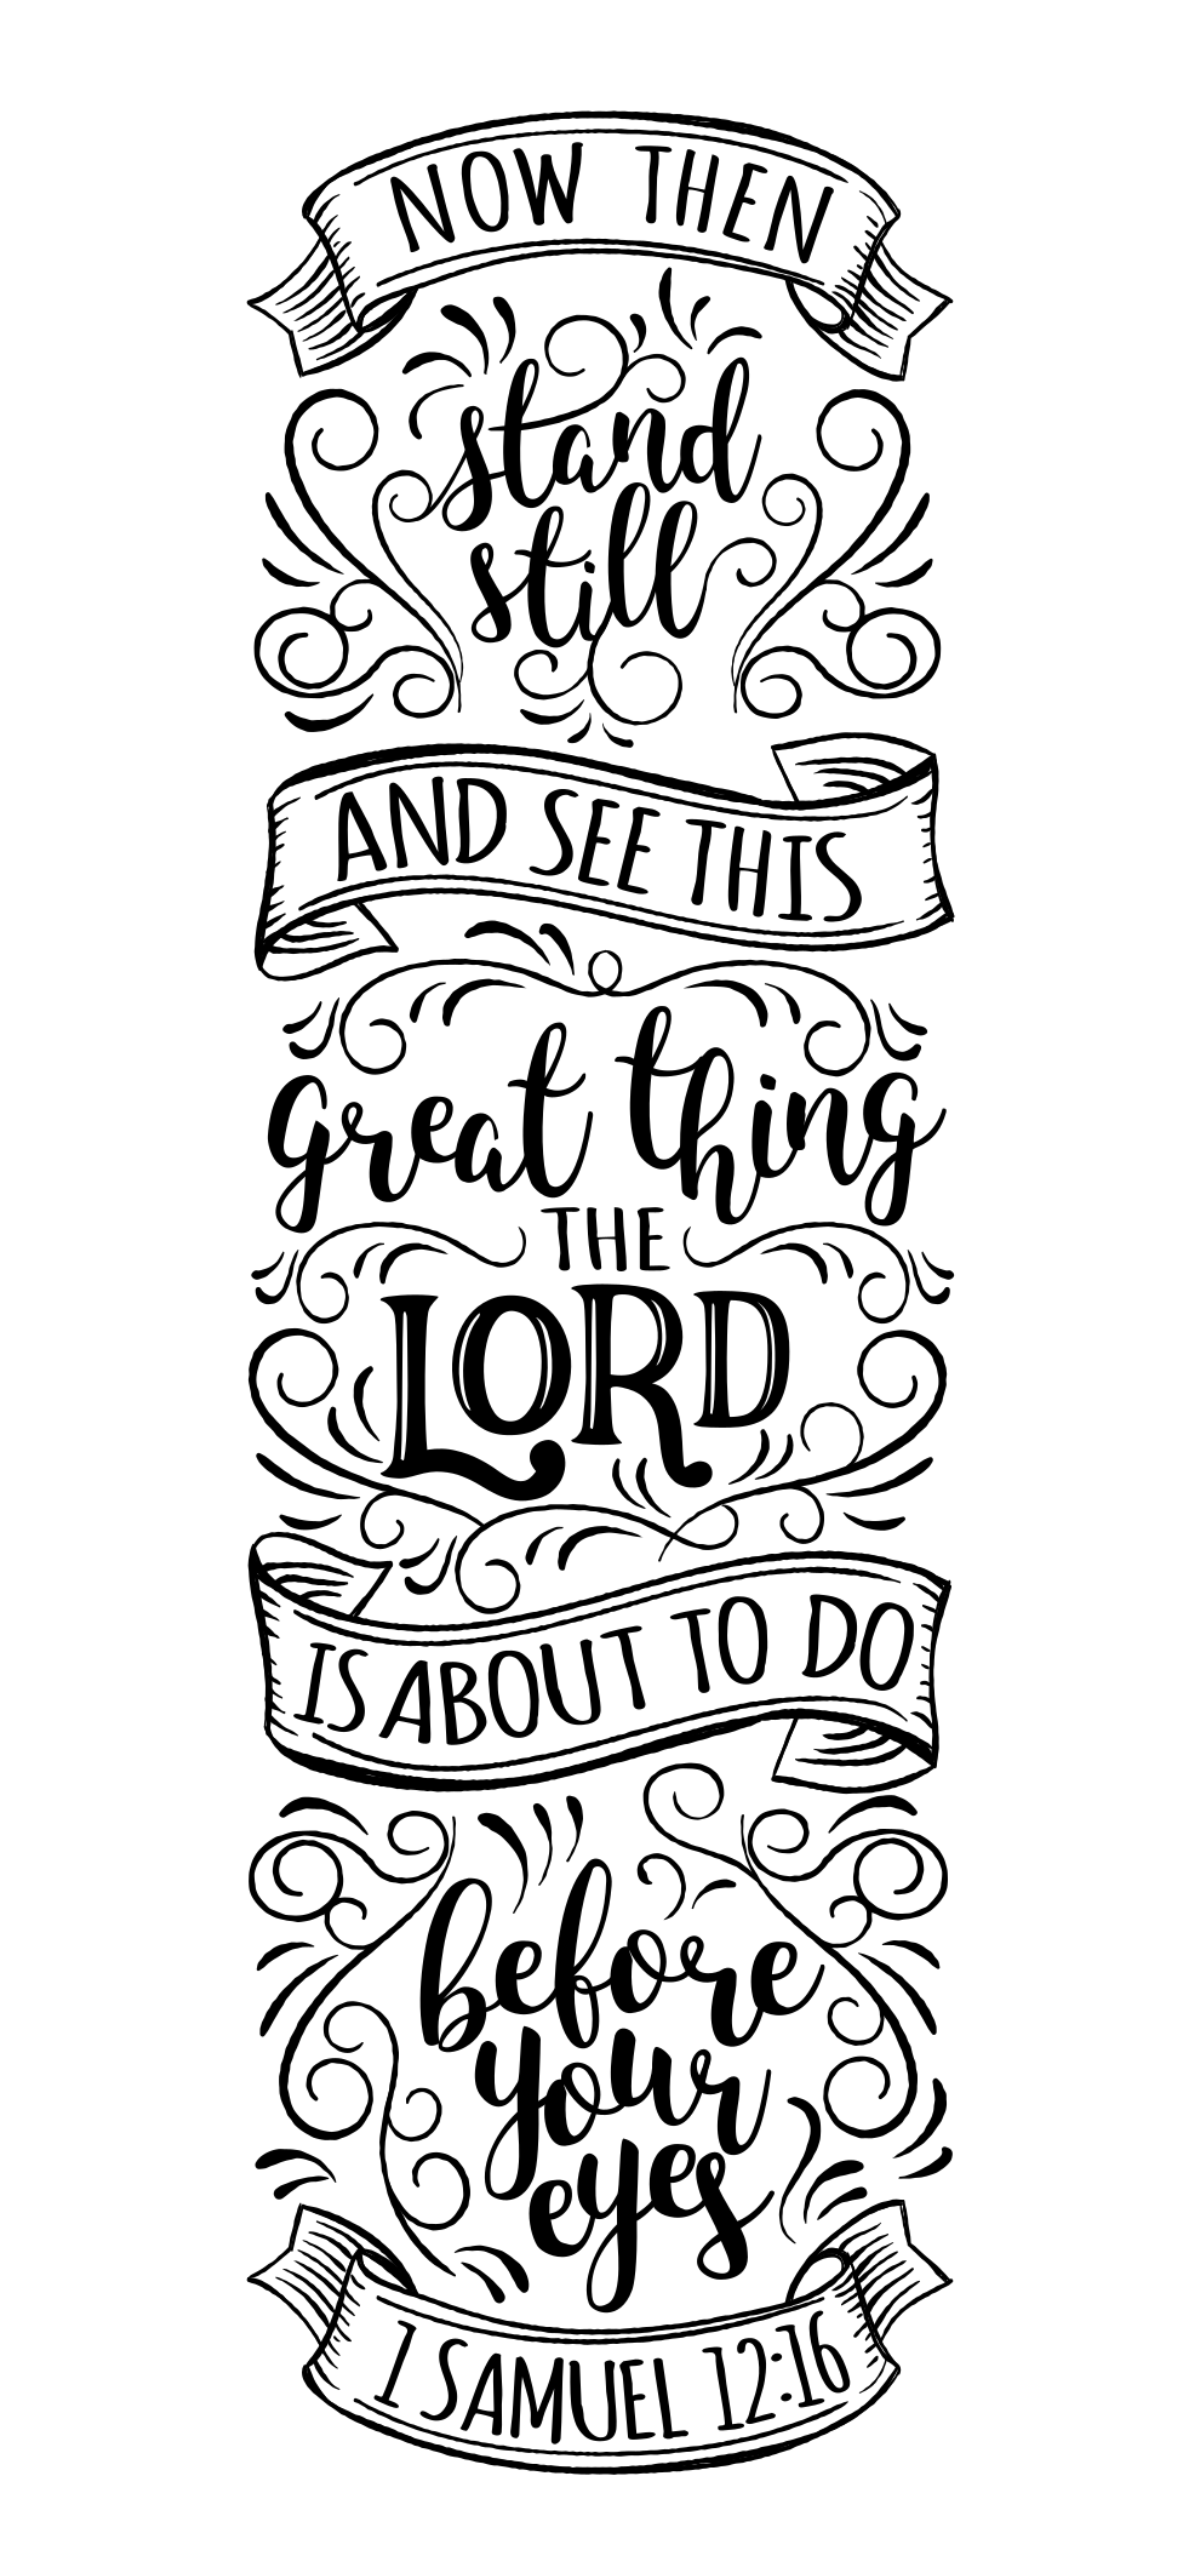 Pin on TEMPLATES for Bible journaling.